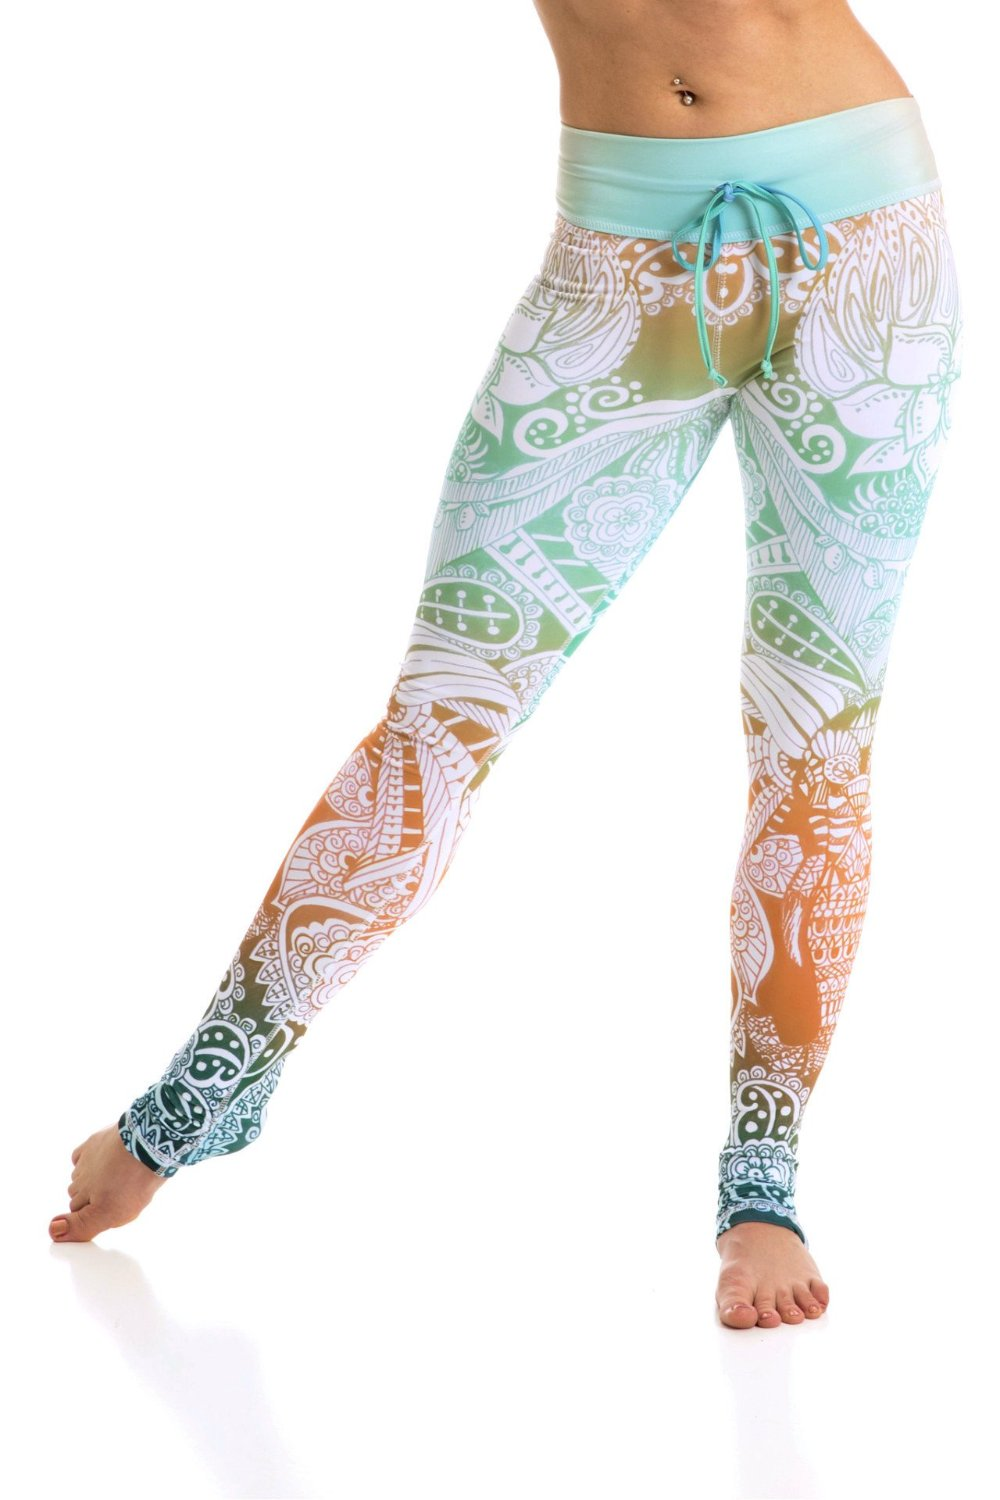 Om Shanti tropical colors High waist drawstring leggings made from premium eco friendly compression fabrics. Mint green pattern. Elephant leggings. Uniquely yoga boutique. front view.